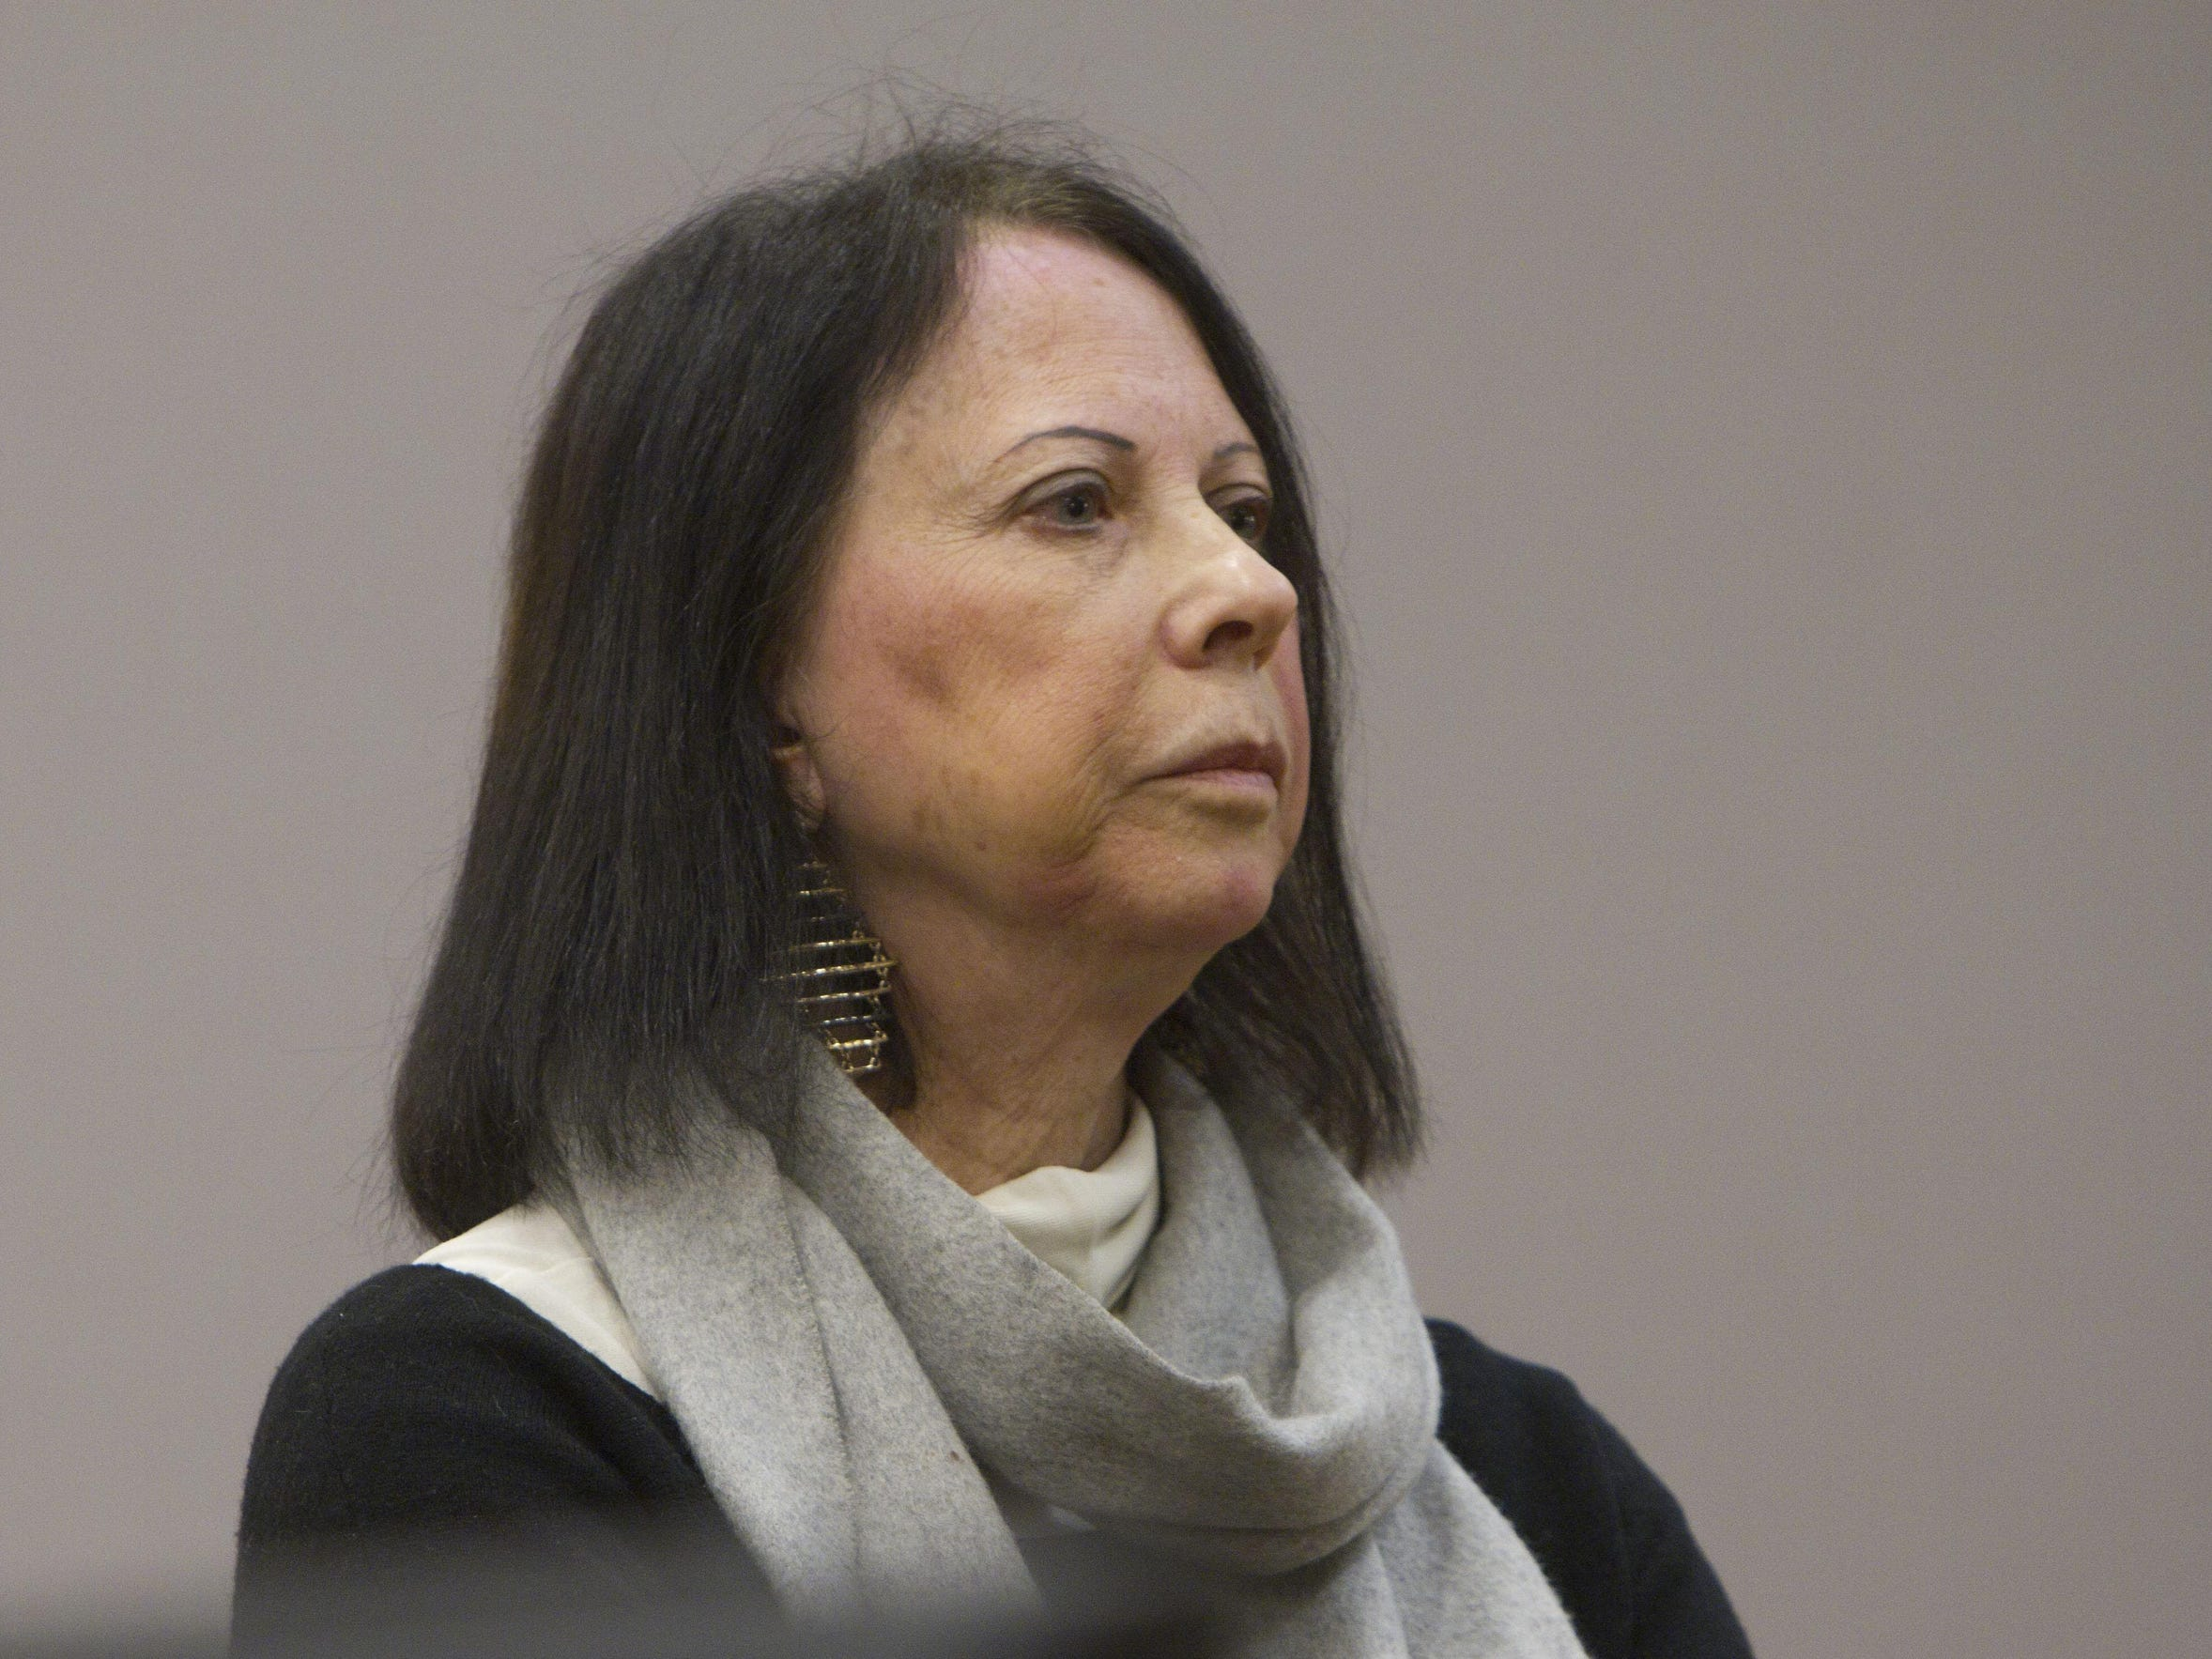 national association to stop guardian abuse attorney barbara lieberman in superior court in atlantic